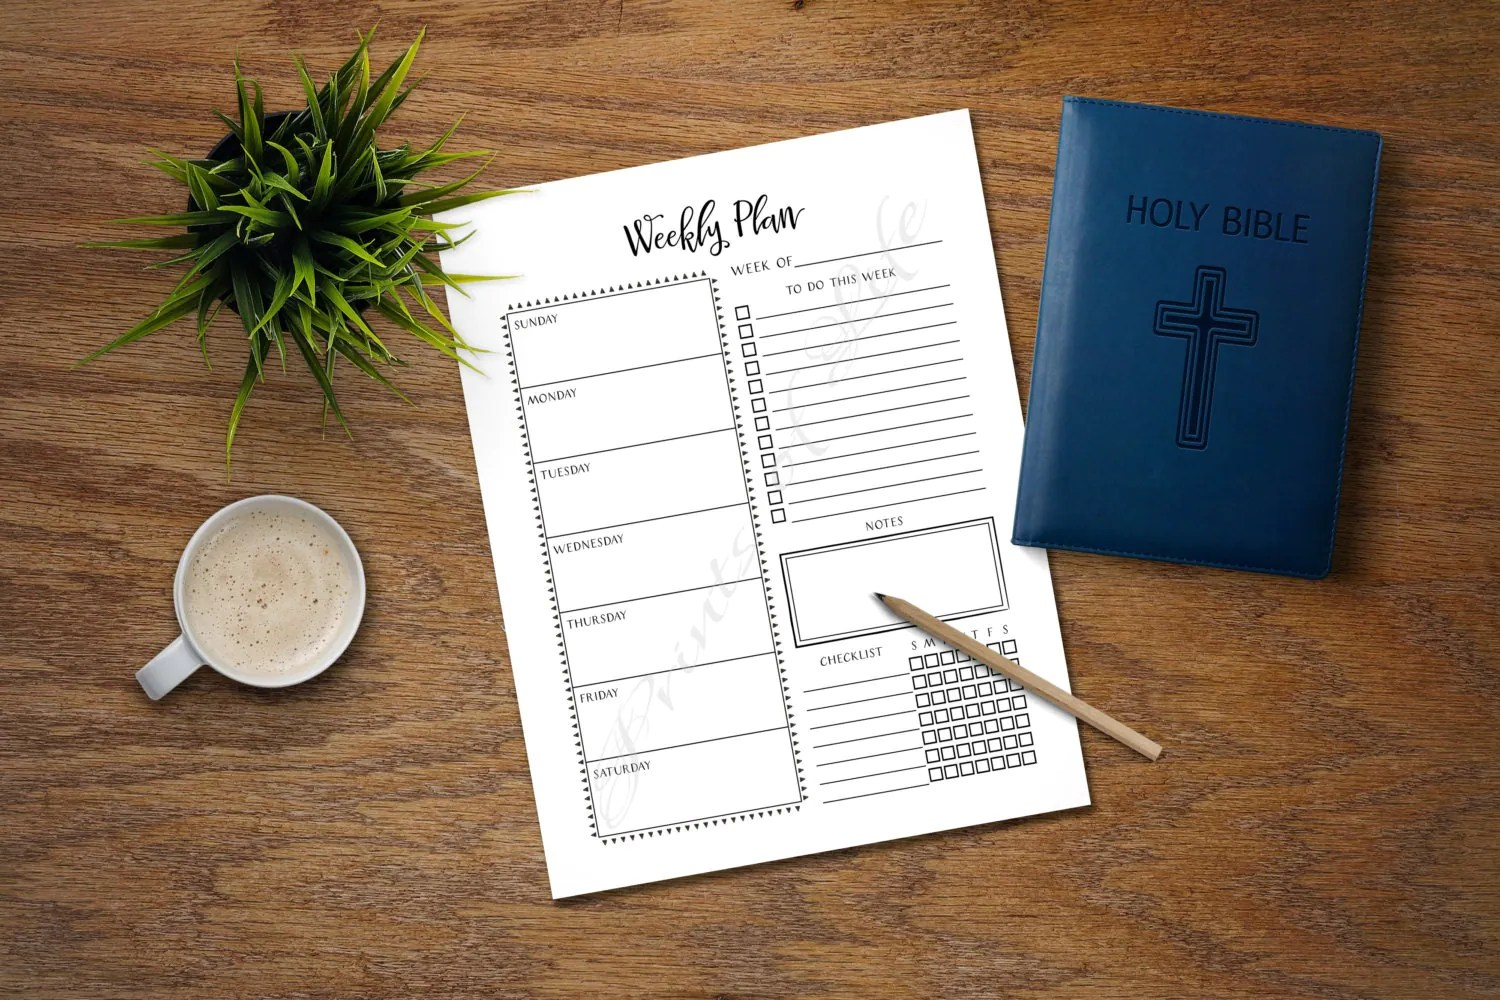 Weekly Plan Christian Day Planner Worksheet Calendar